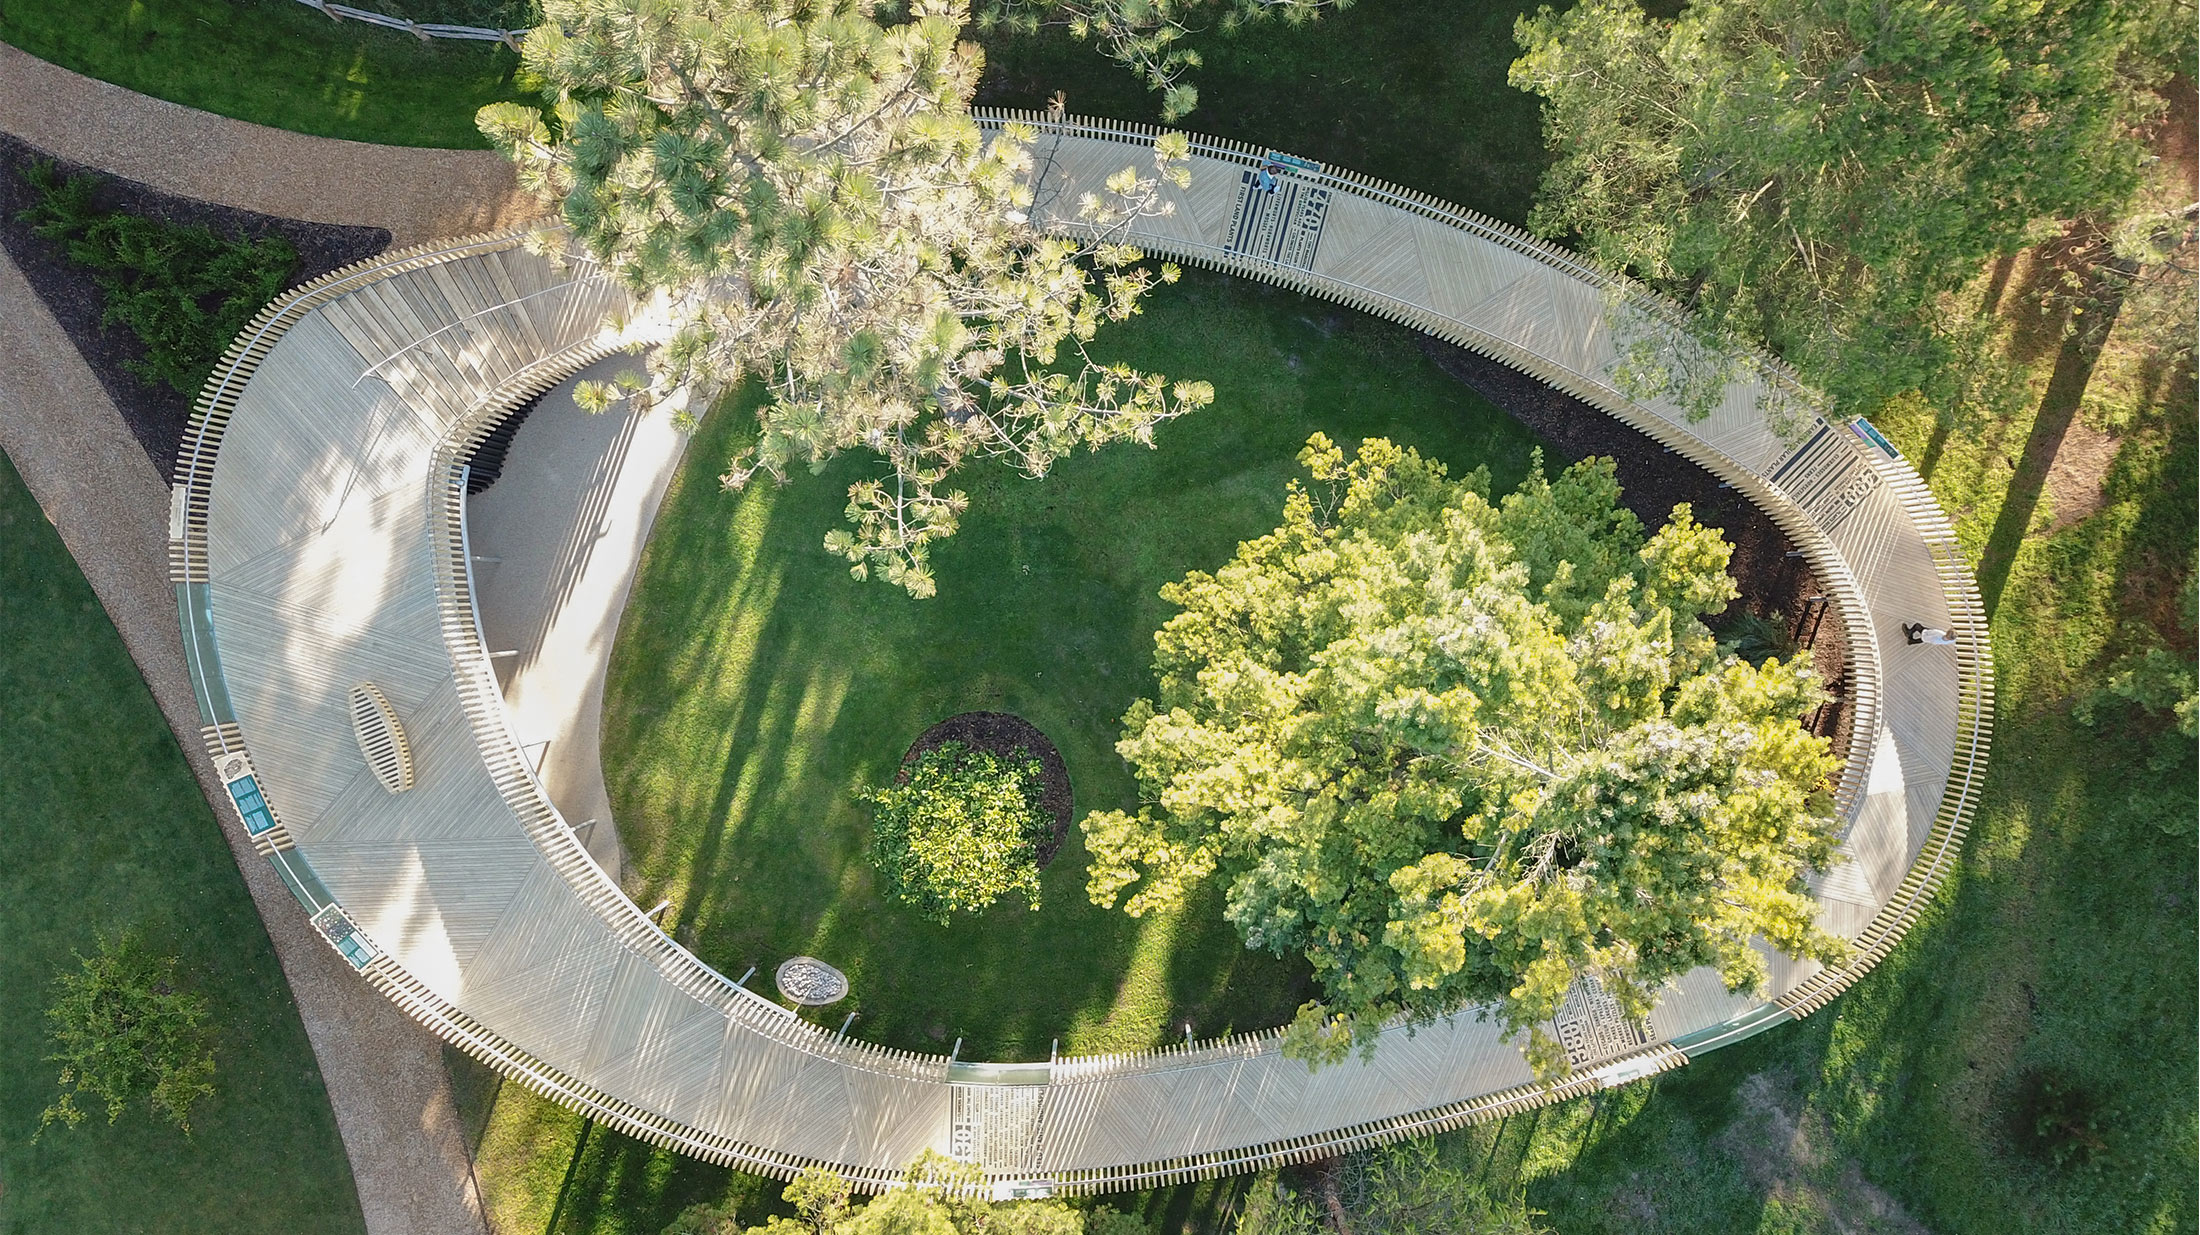 Ariel view from above at the Cambridge botanic gardens. The rising path is made from accoya wood and goes around in a full circle.